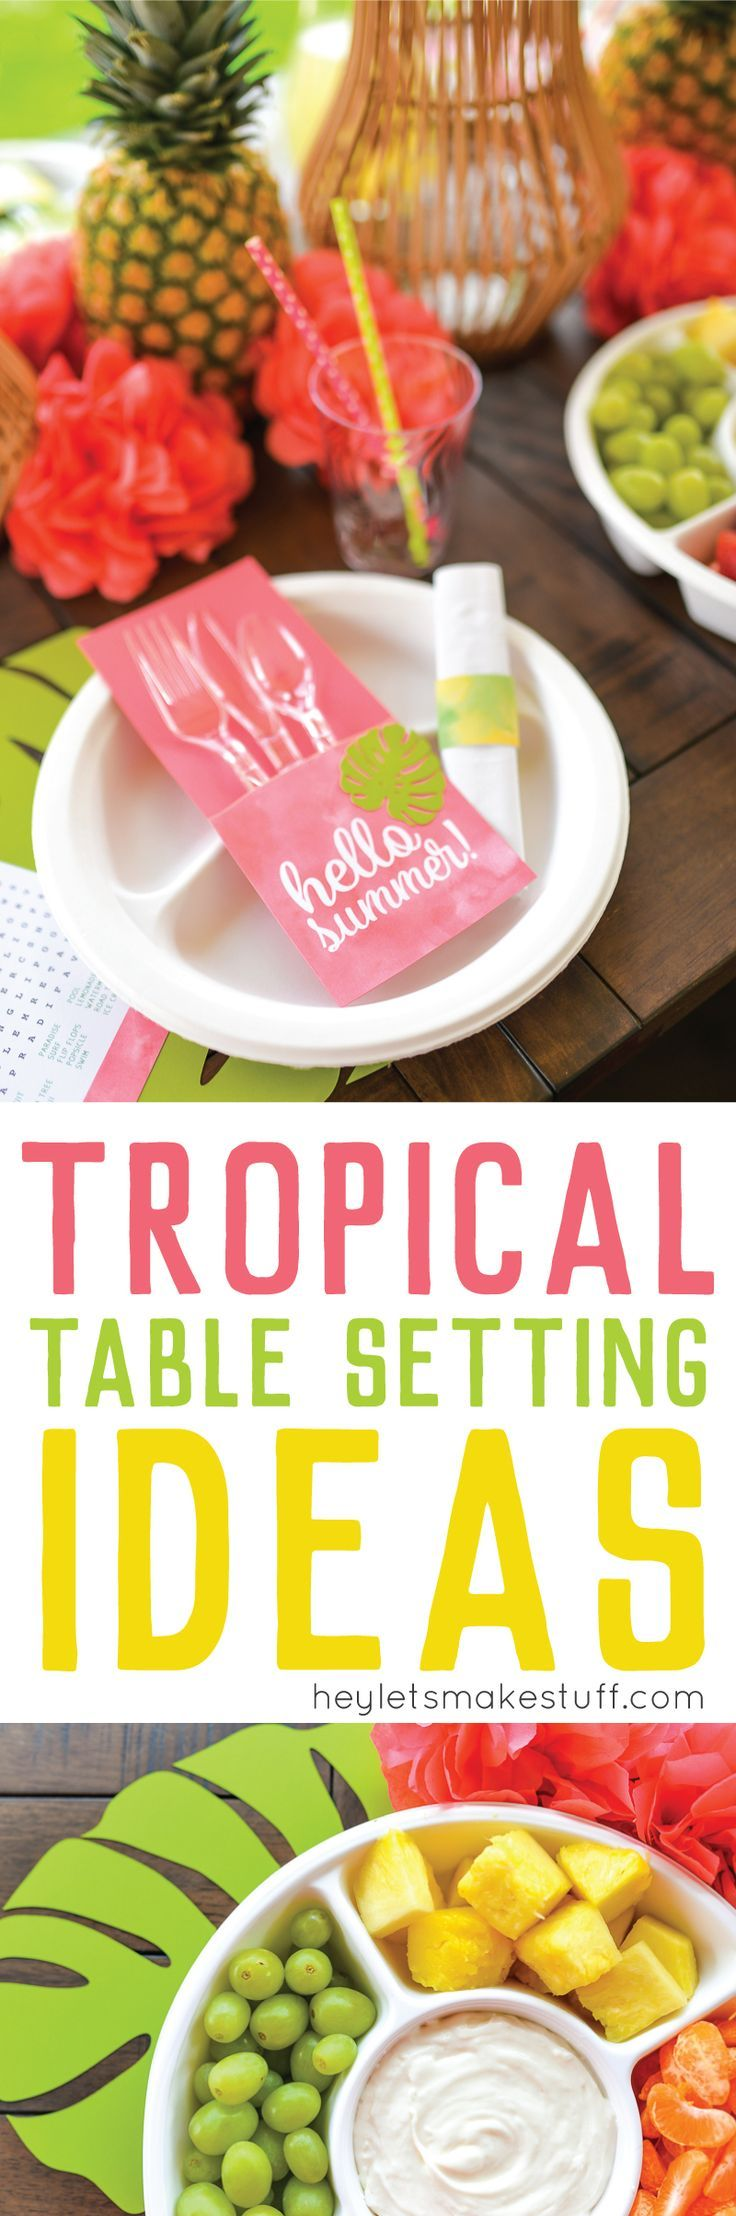 If you're longing for the Caribbean, here are some fun tips and tricks to create your own tropical table setting at home! Includes free printable files, too! #ad #MyChinetParty